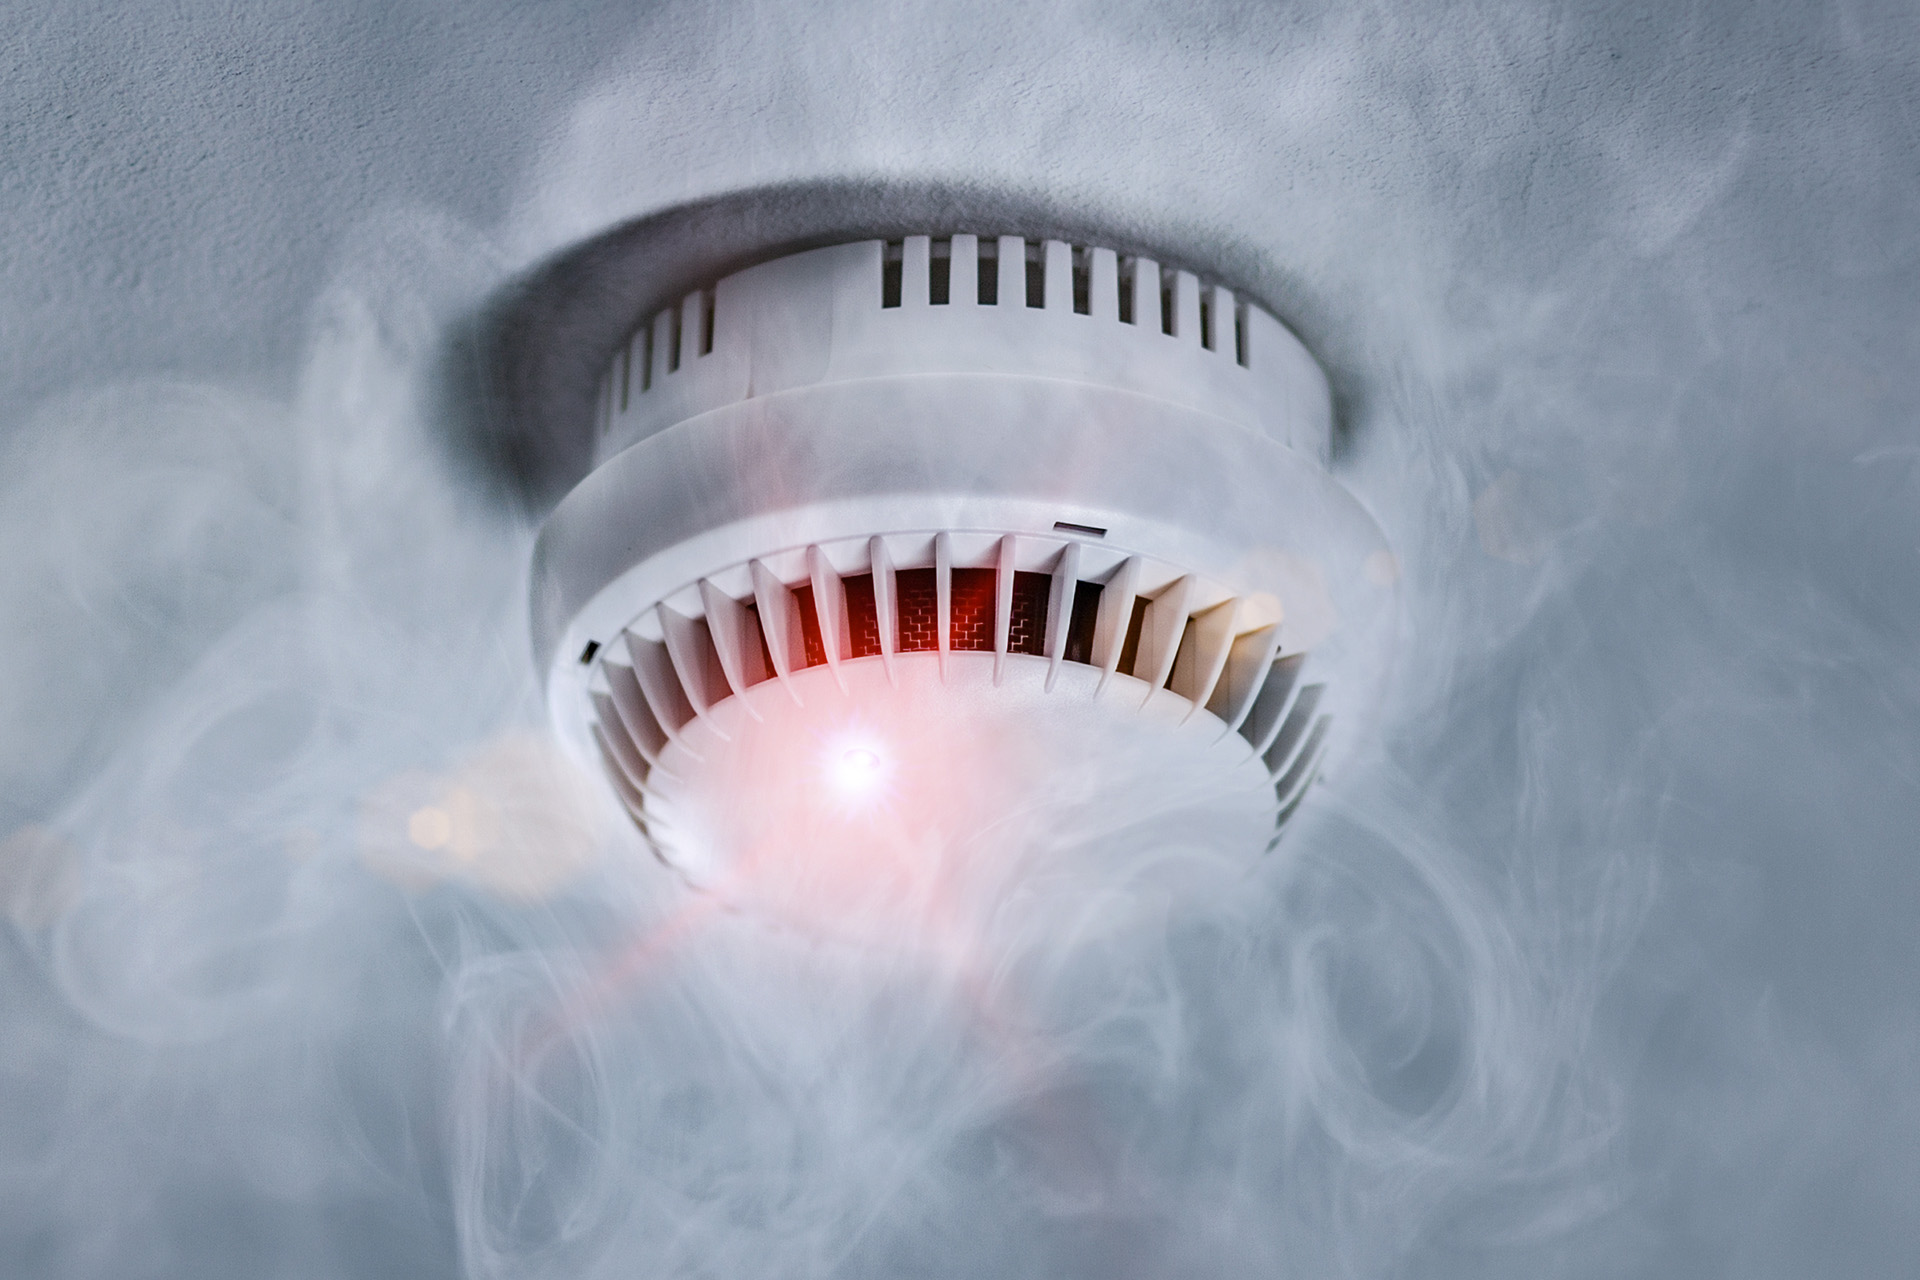 Smoke detector on ceiling surrounded by smoke